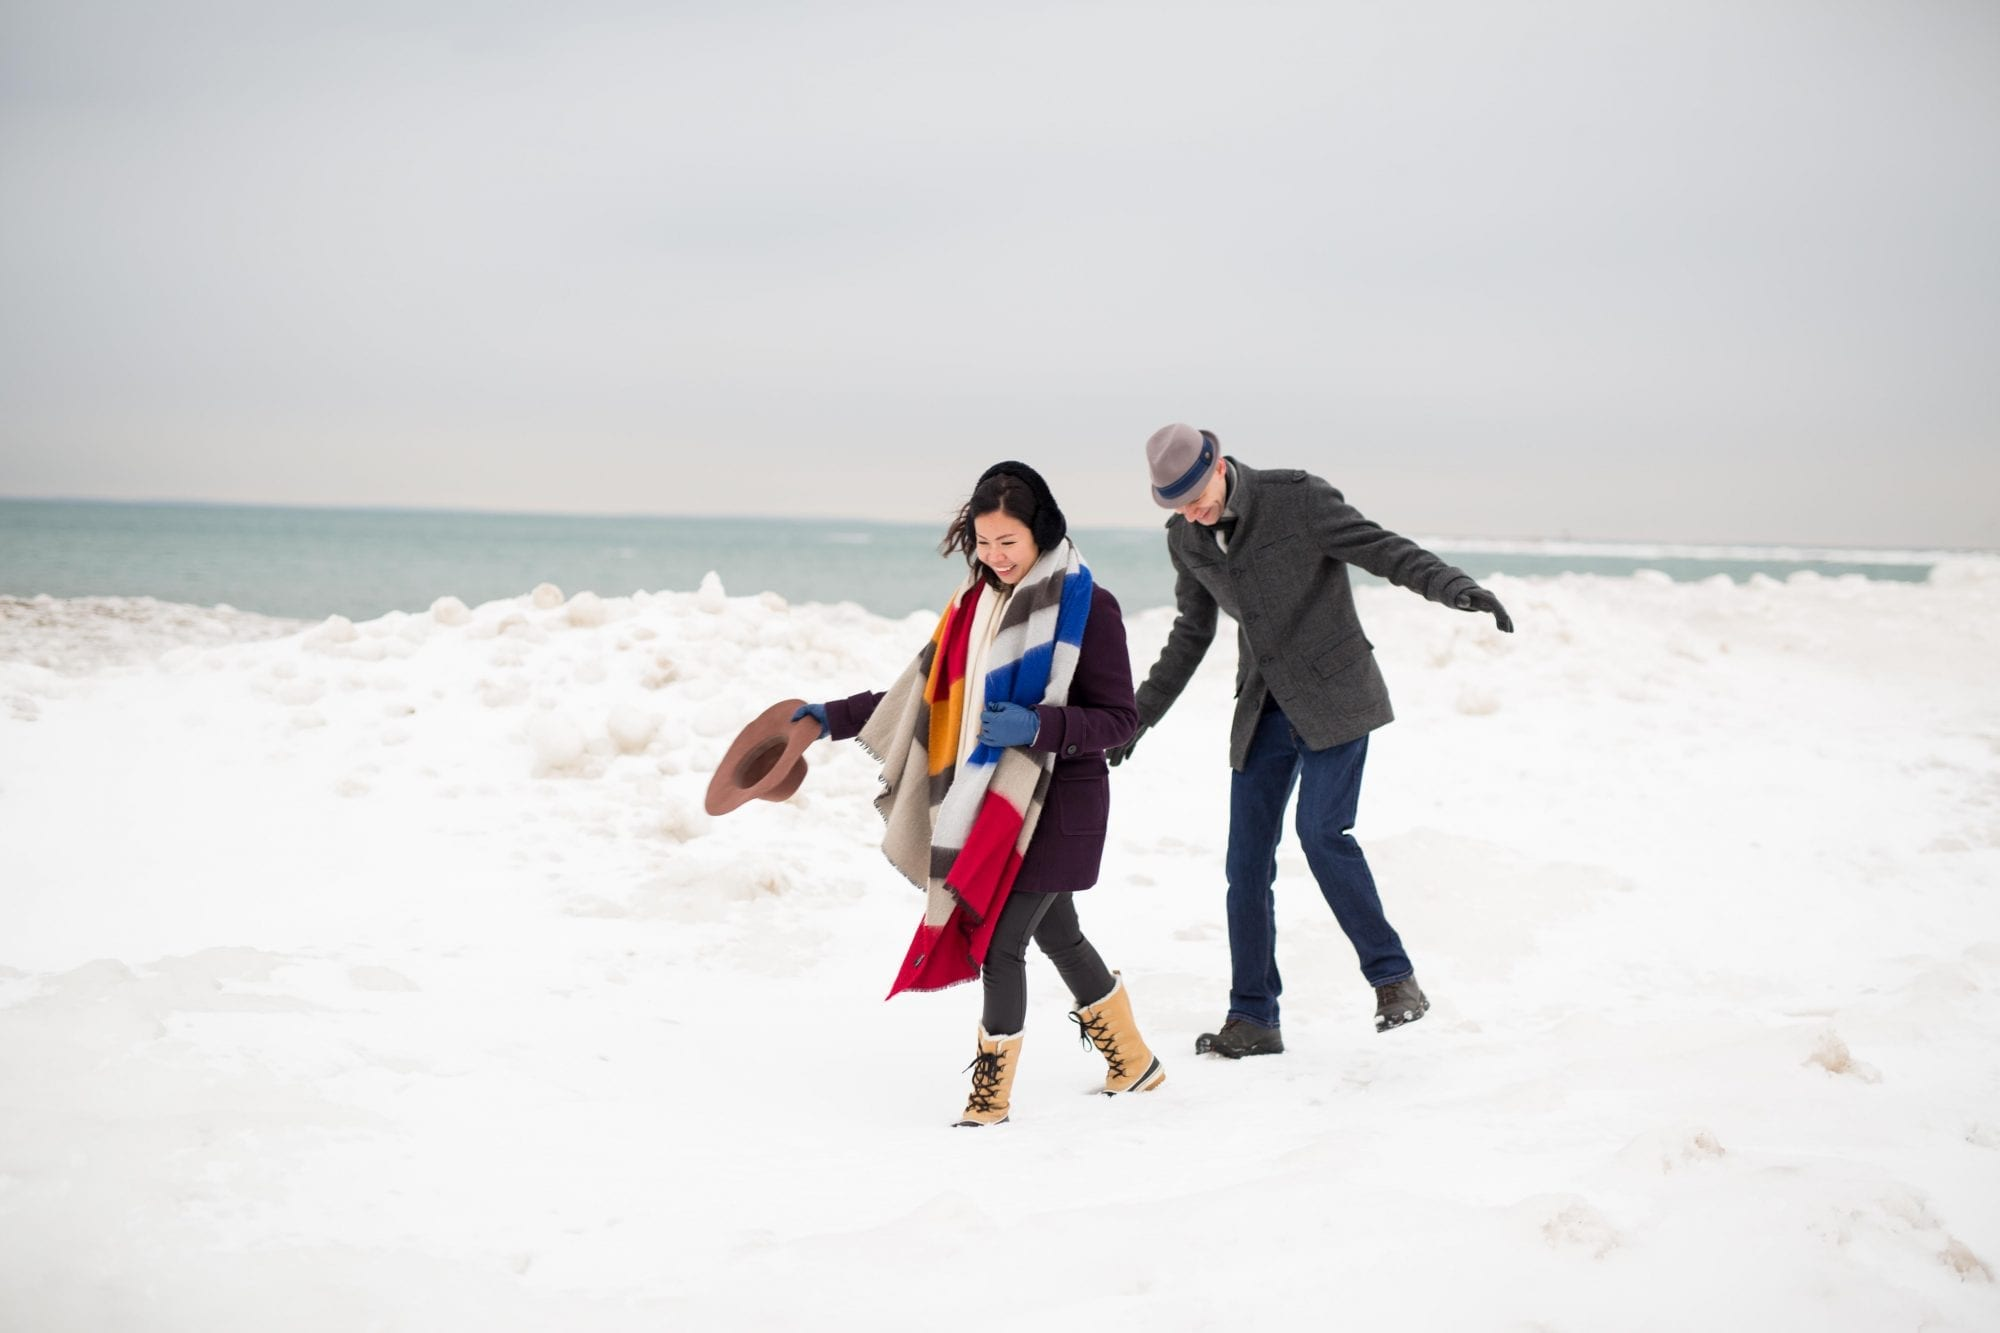 Winter-Shoot-Walk-Engagement-Zsuzsi-Pal-Photography